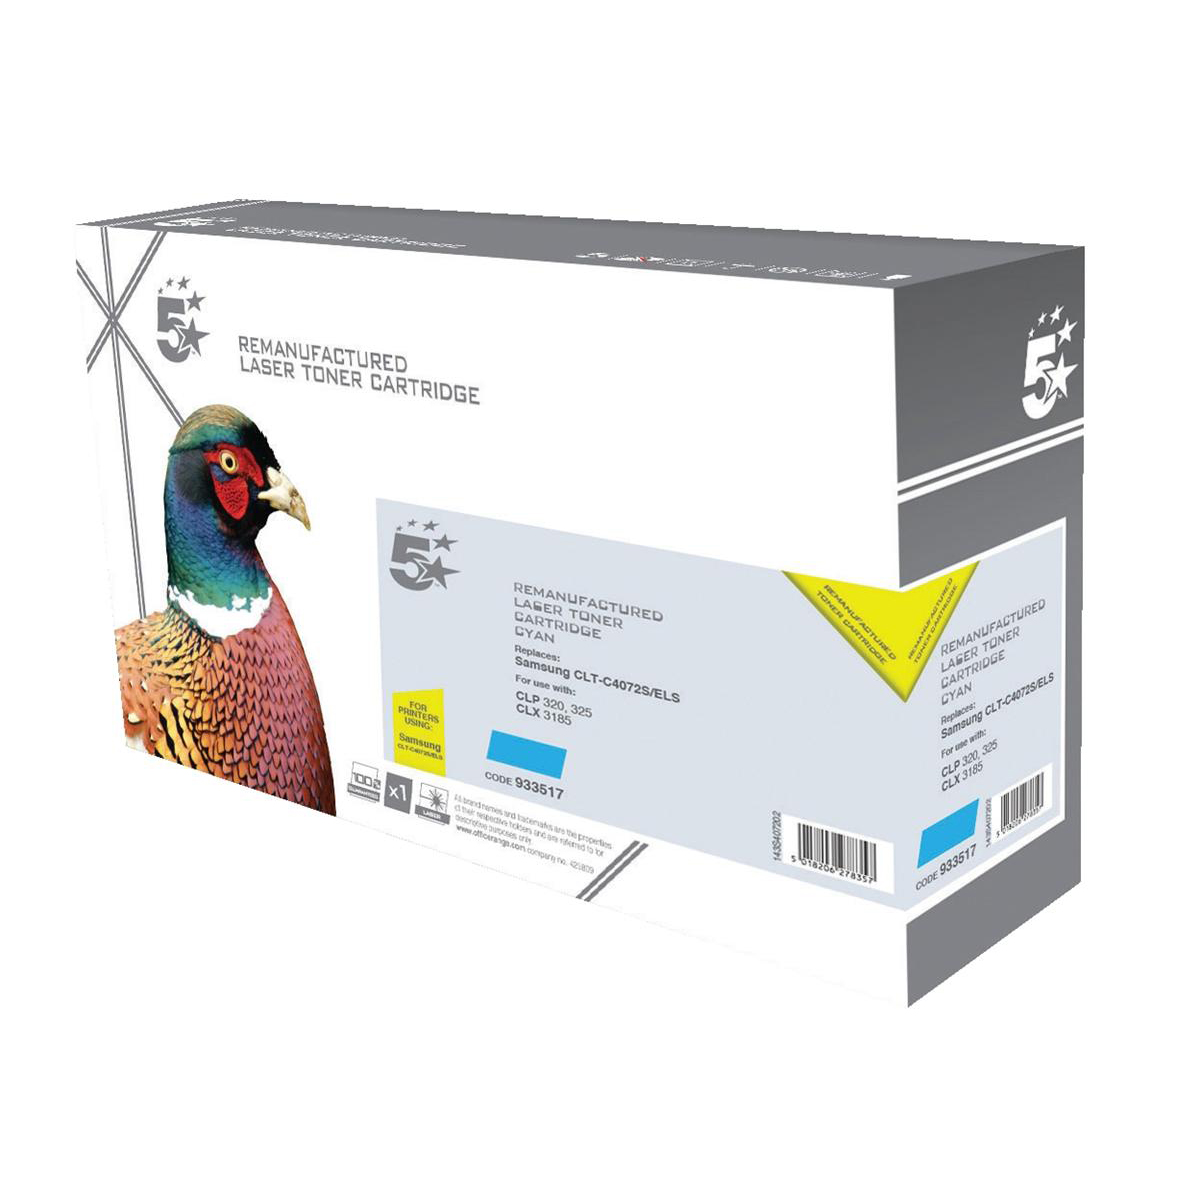 5 Star Office Remanufactured Laser Toner Cartridge Page Life 1000pp Cyan [Samsung CLT-C4072S Alternative]